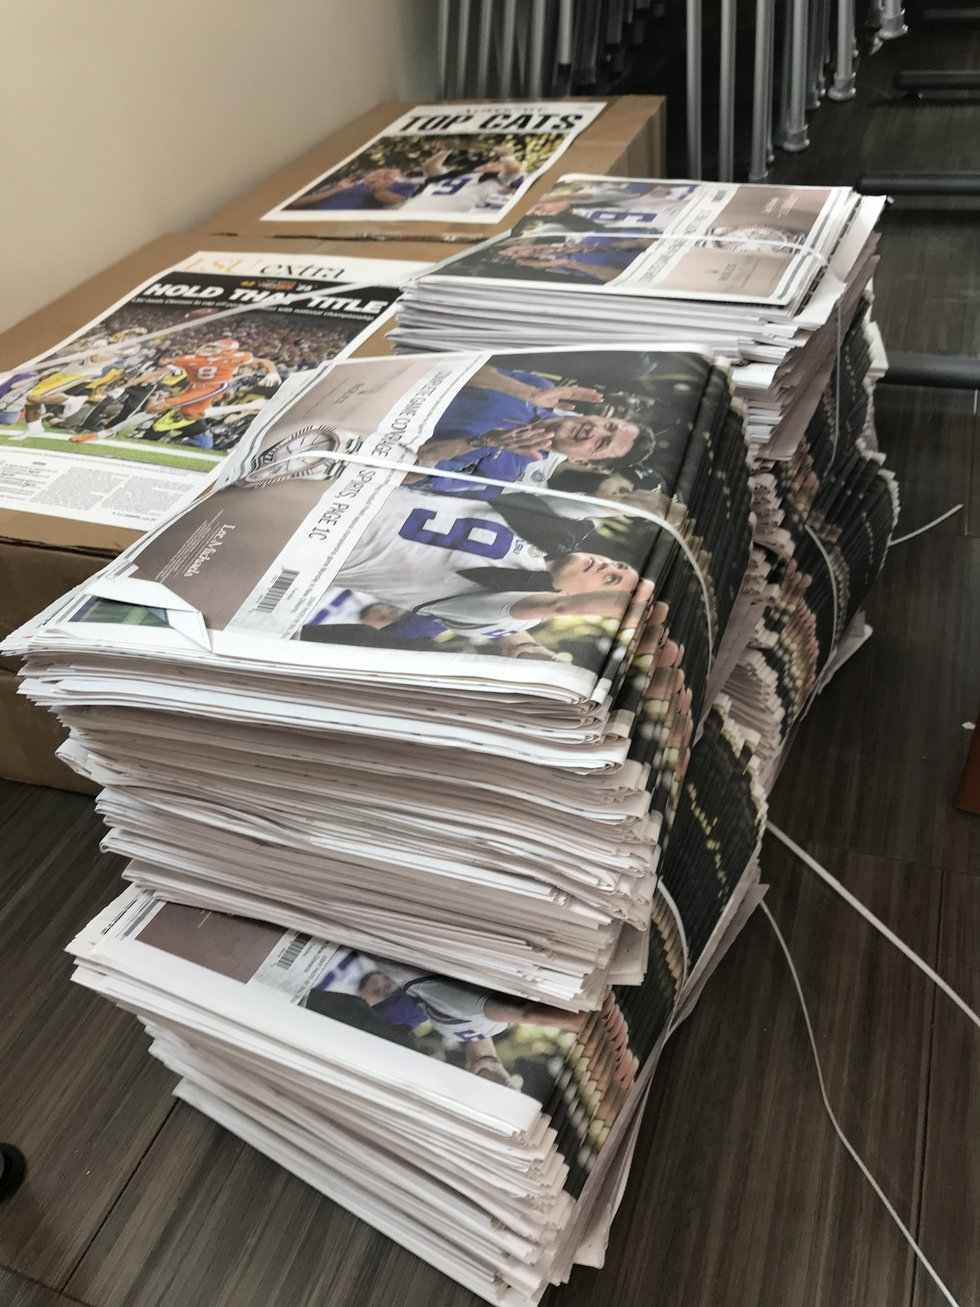 Stacks of Tuesday's newspaper awaiting to be sold. An additional 20,000 papers were printed on...